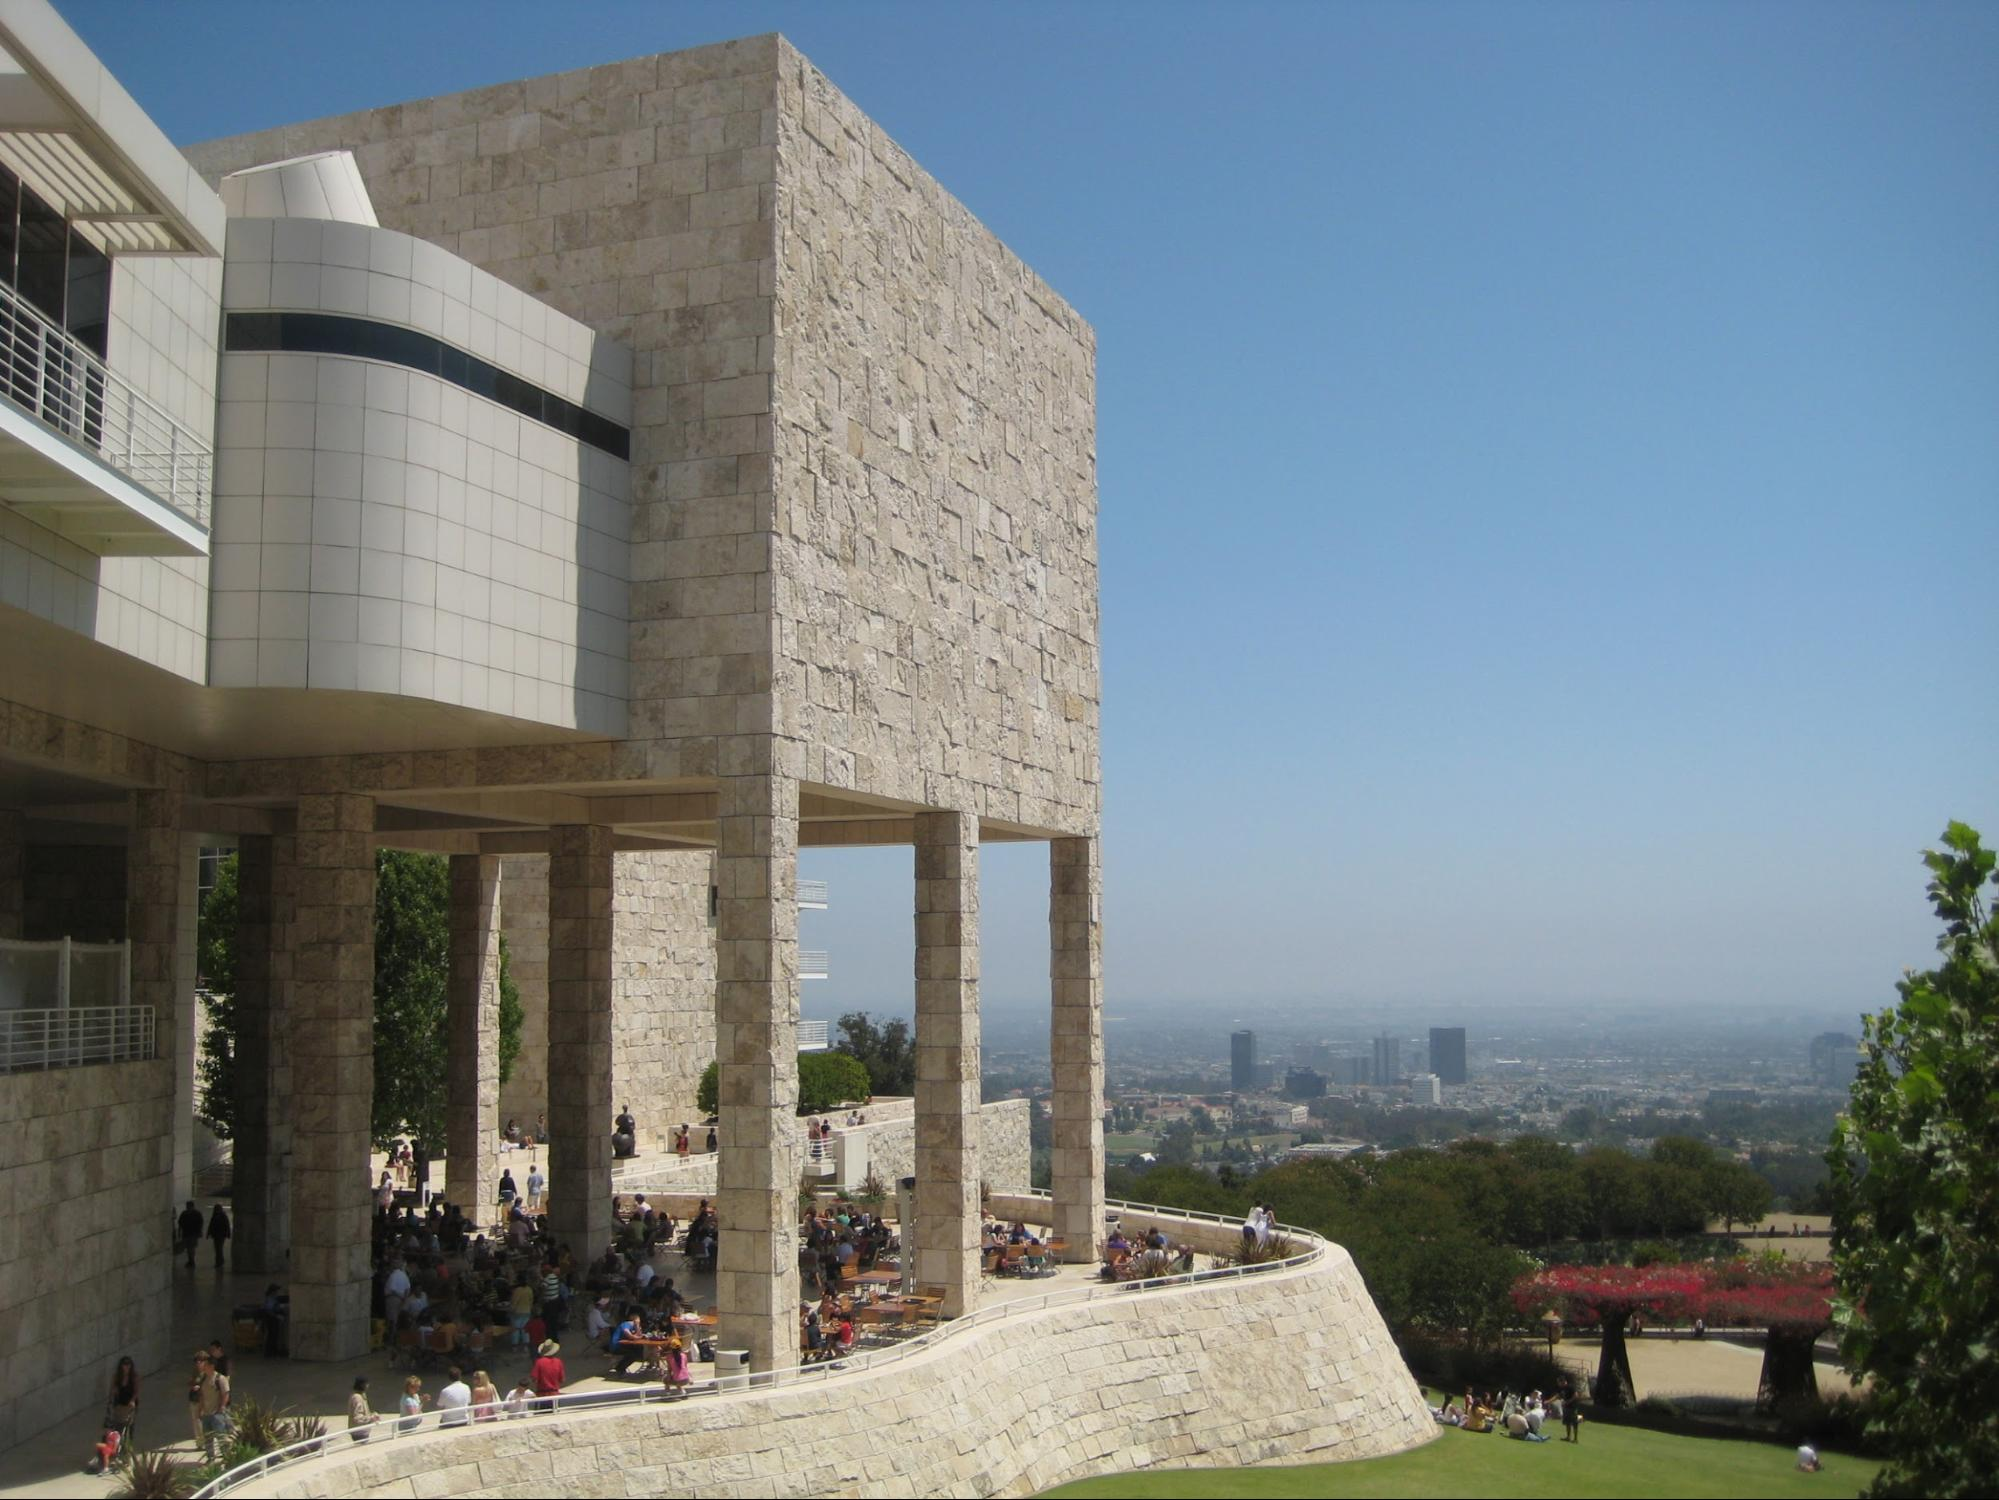 If you're willing to pay for parking, you can work for free at  The Getty  in Los Angeles, California. Photo courtesy  Ricardo Diaz .